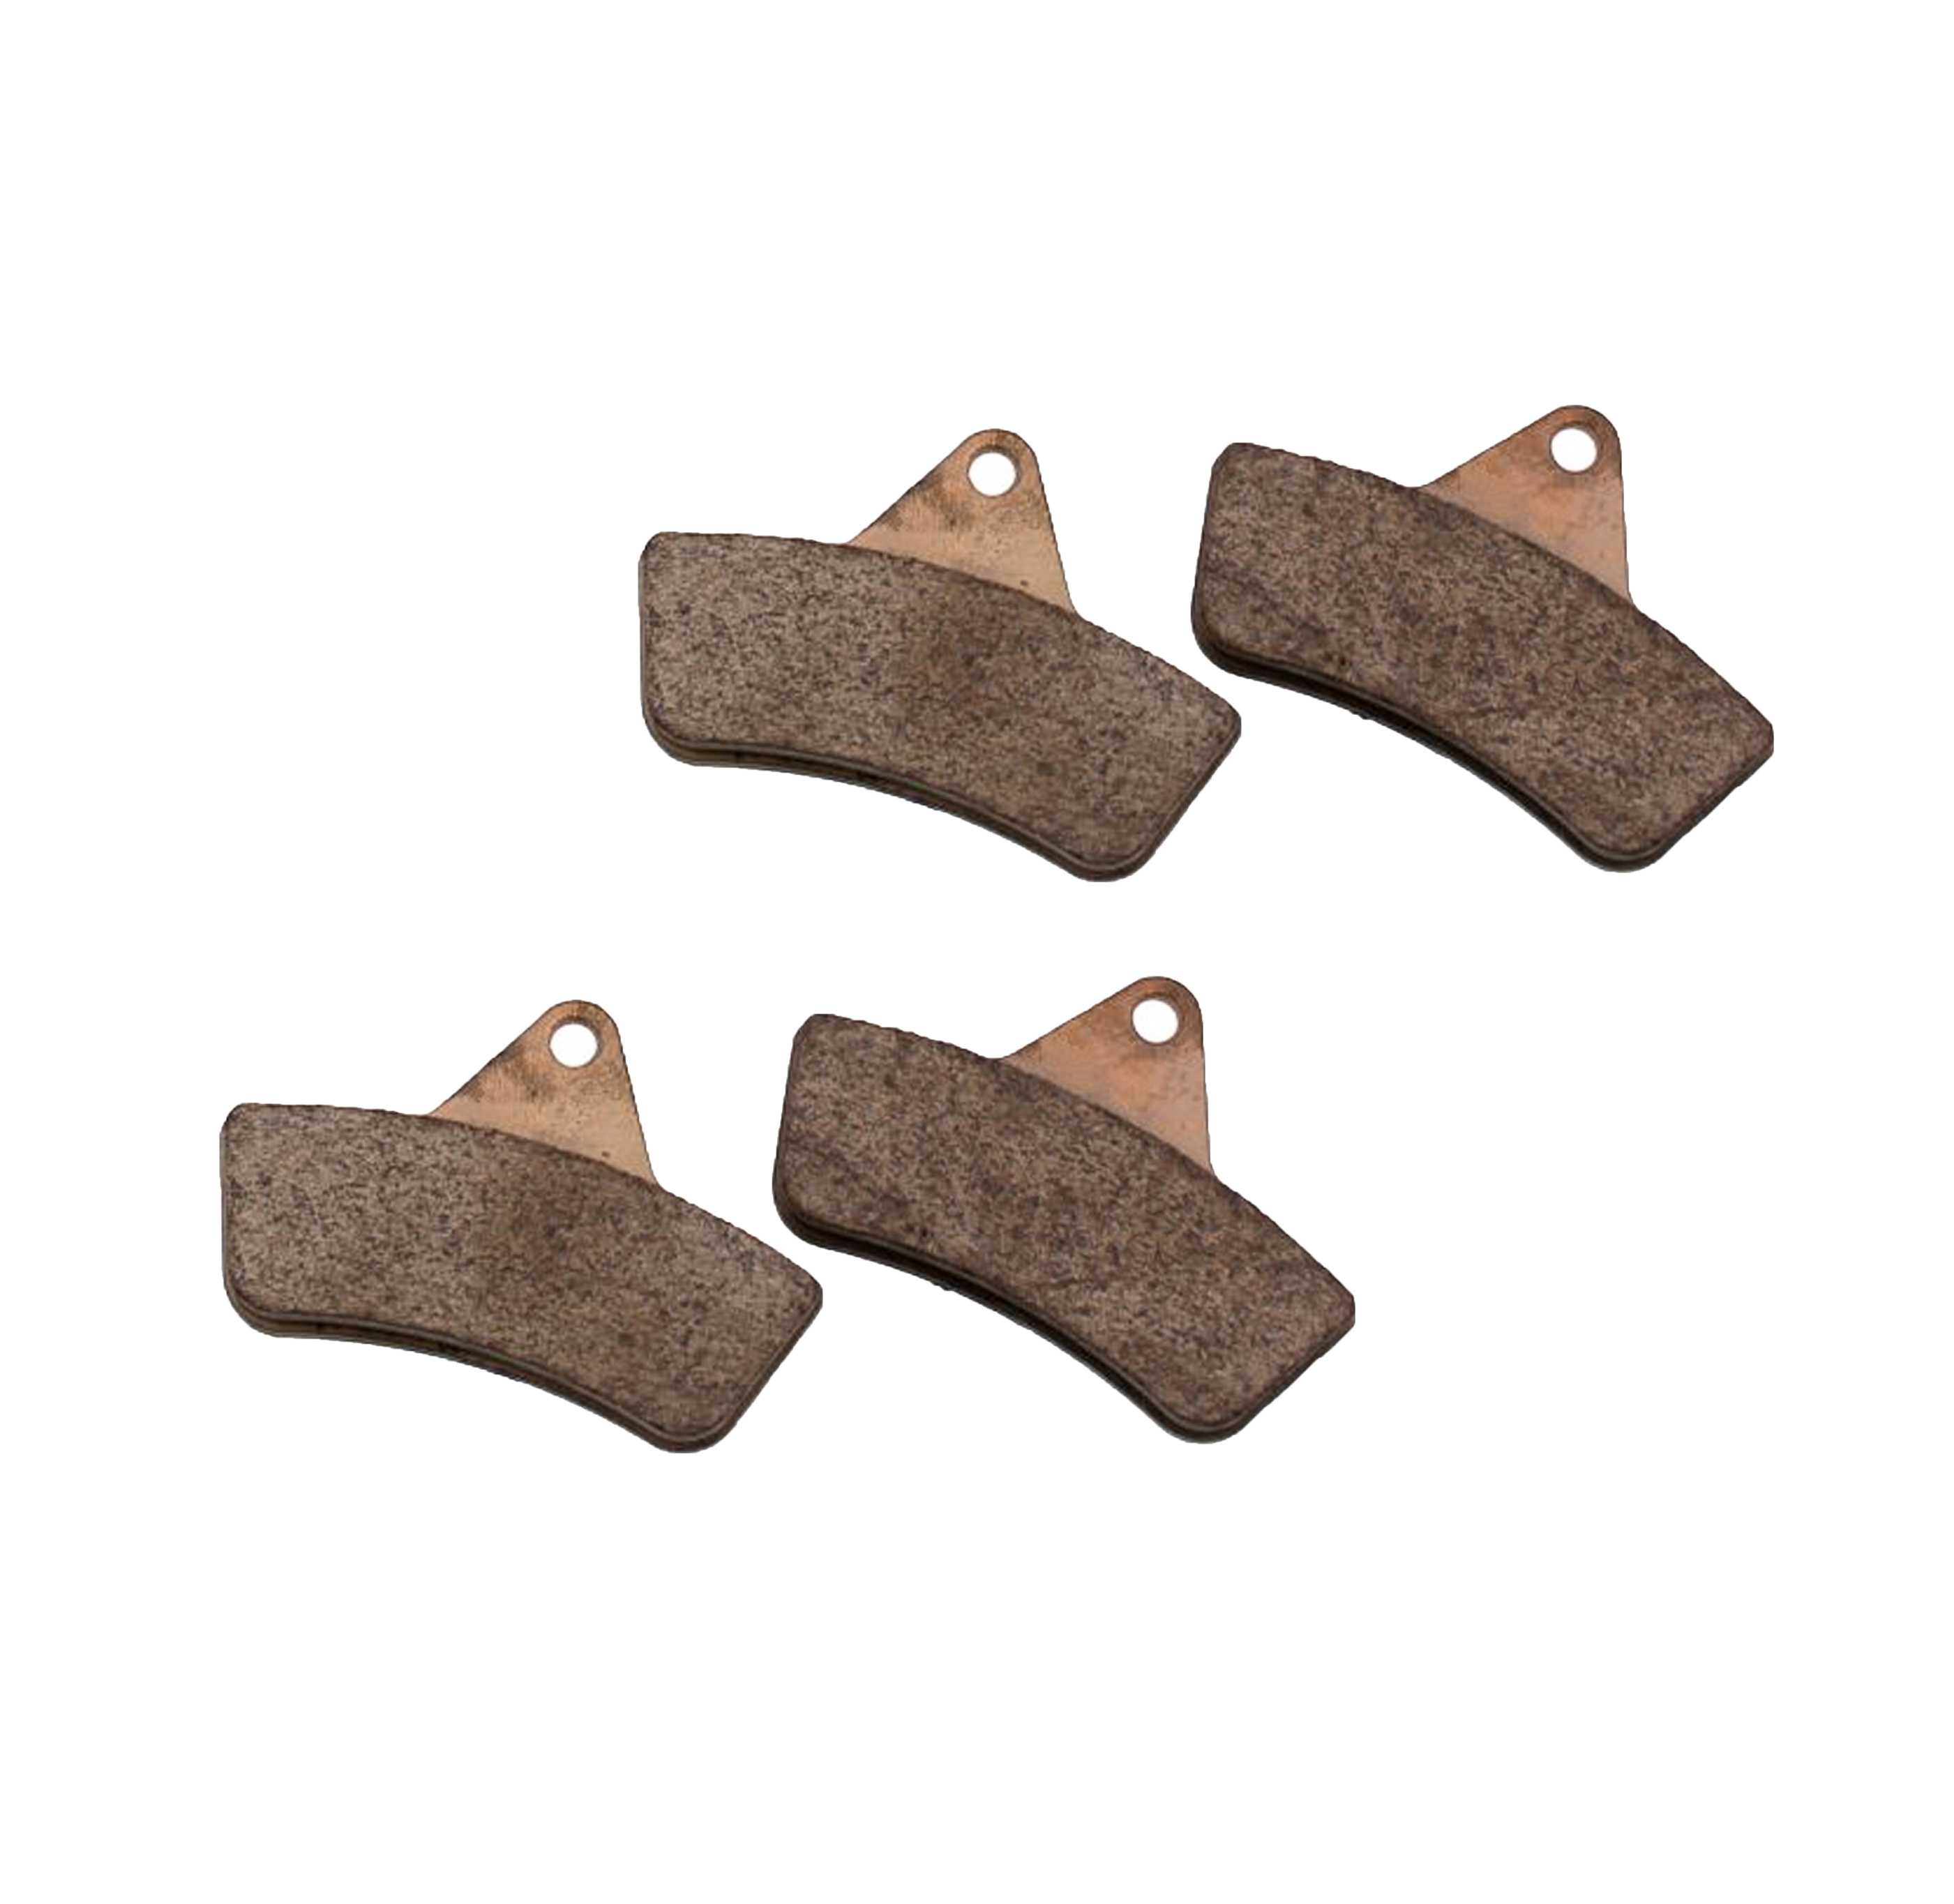 4X4 2001-2004 Front Rear Brake Pads For Arctic Cat 250 Utility 2X4 1999-2004